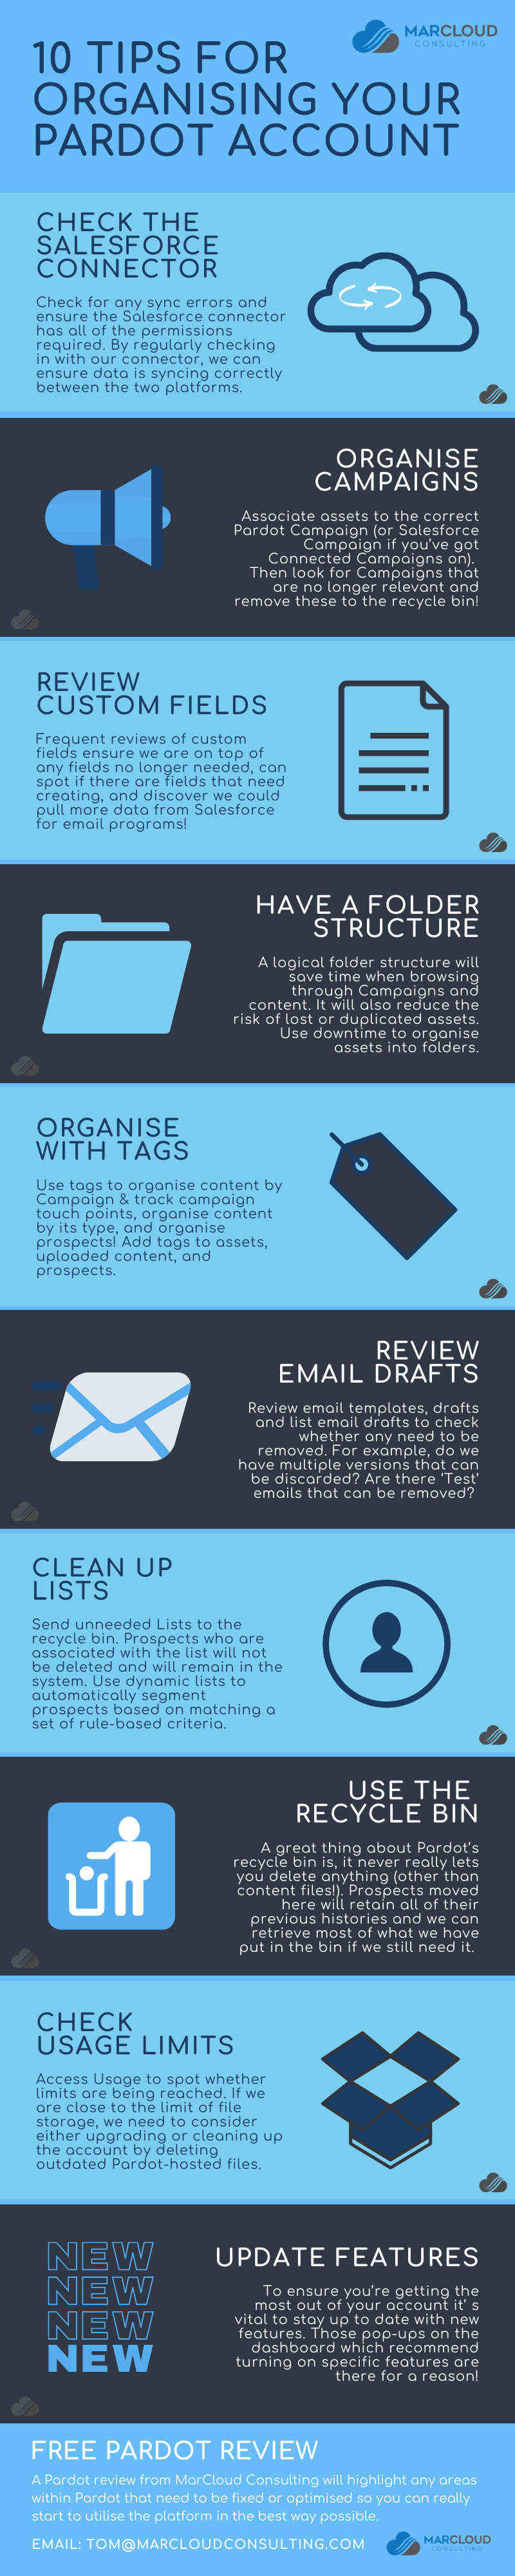 Tips for Organising Pardot Account Infographic